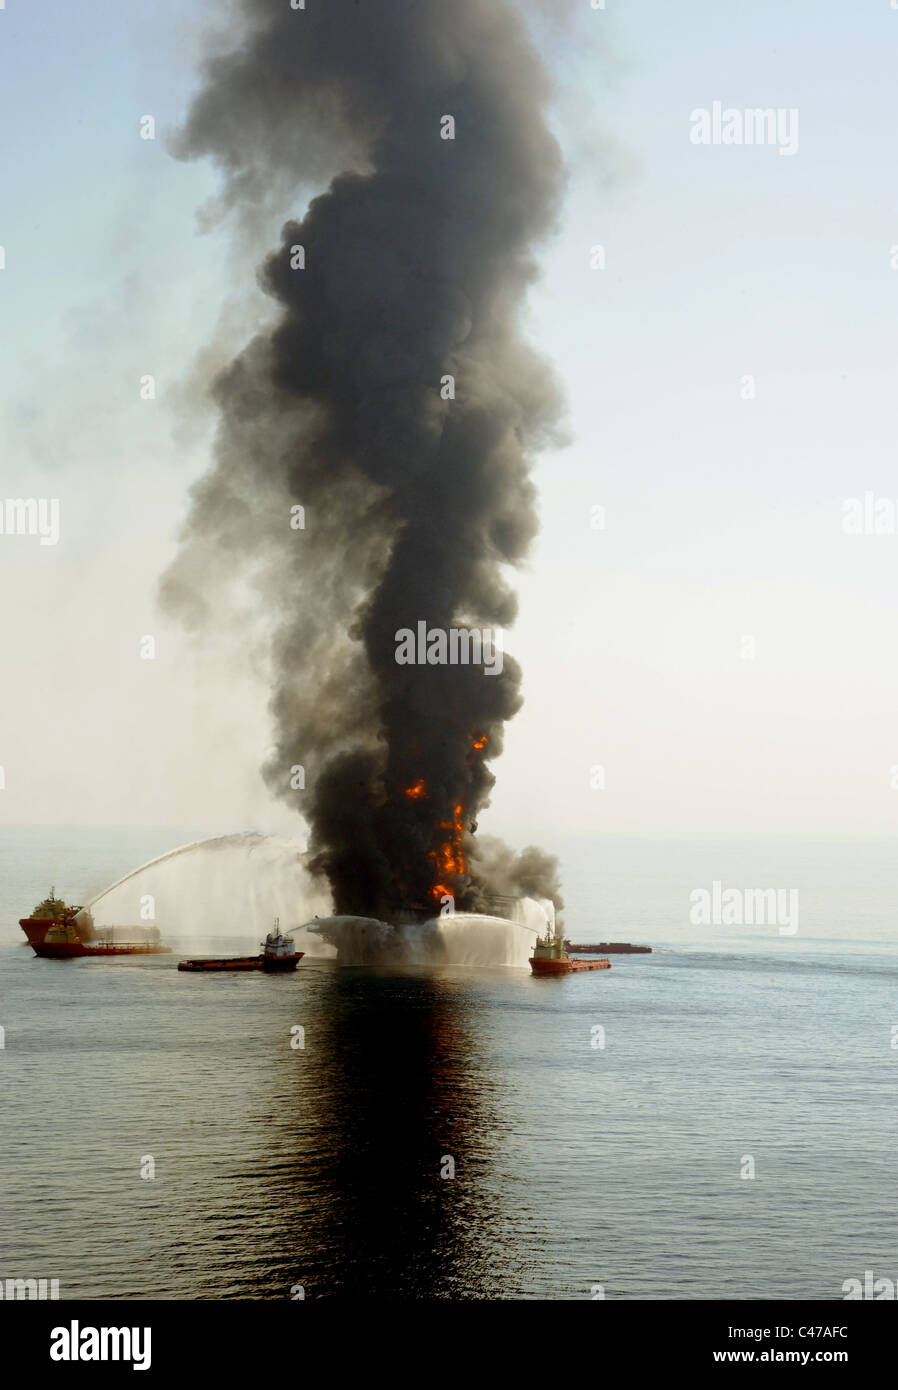 Fire boats battle an explosion at the off shore oil rig Deepwater Horizon in the Gulf of Mexico. - Stock Image